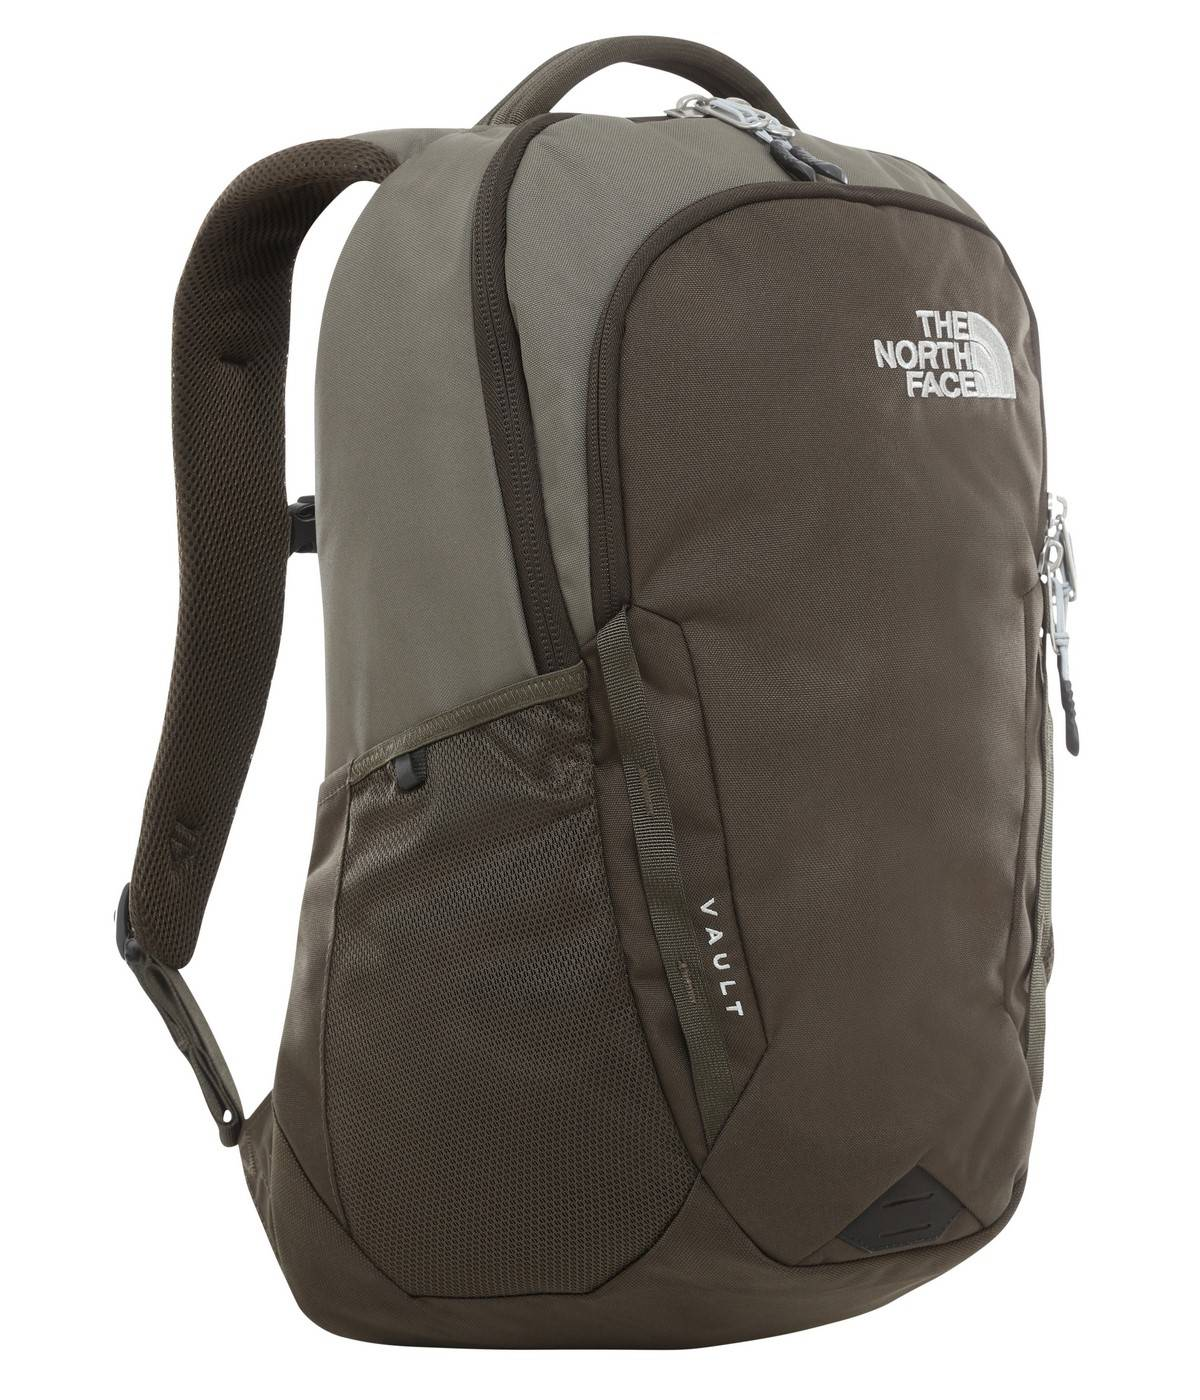 The North Face Zaino The North Face Vault New Taupe Green EM9